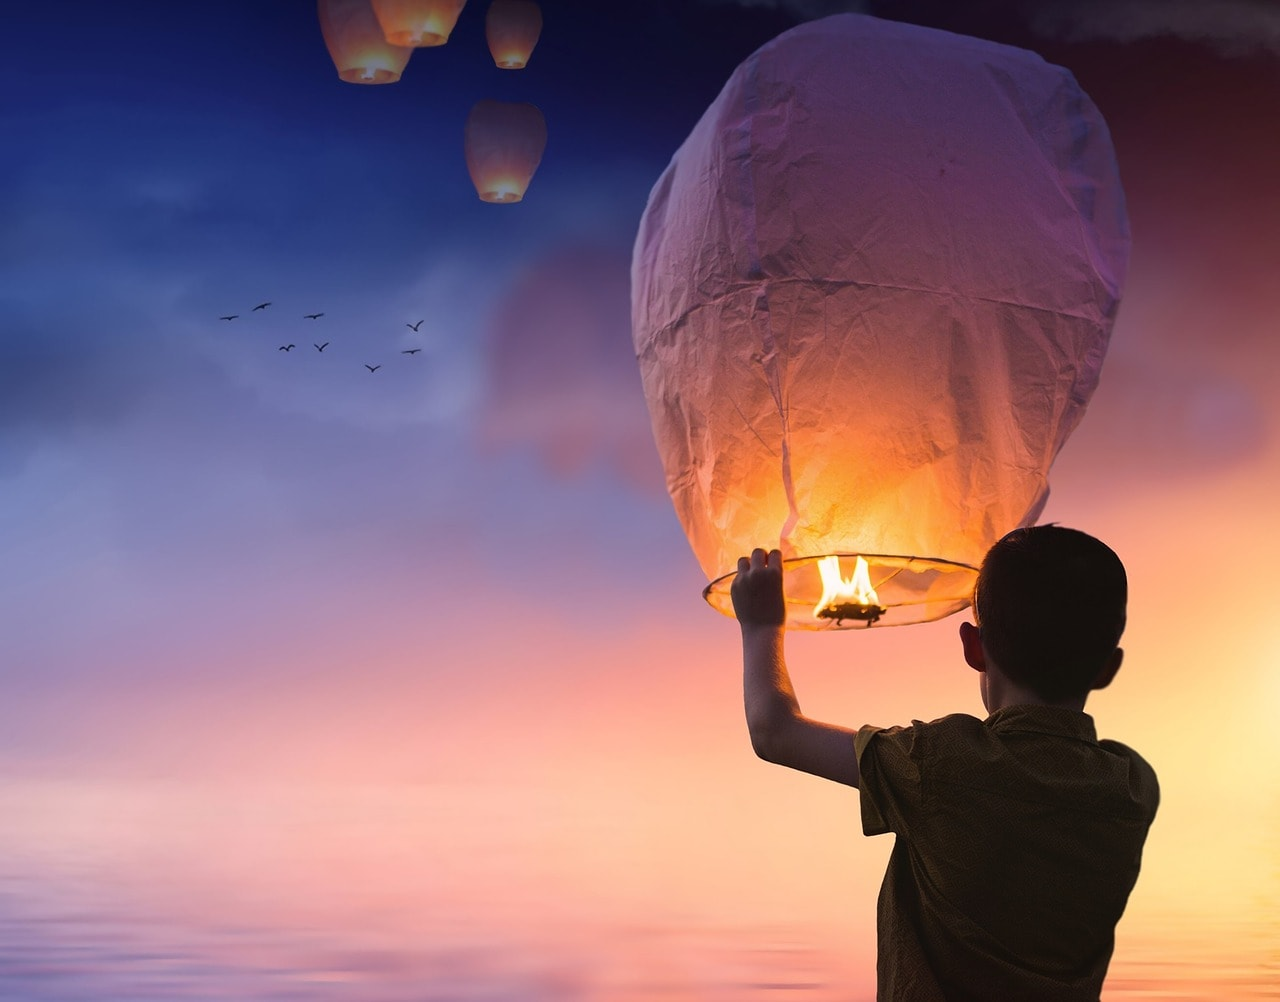 a silhouetted figure releases a chinese lantern into the sky - live your best life with life coaching